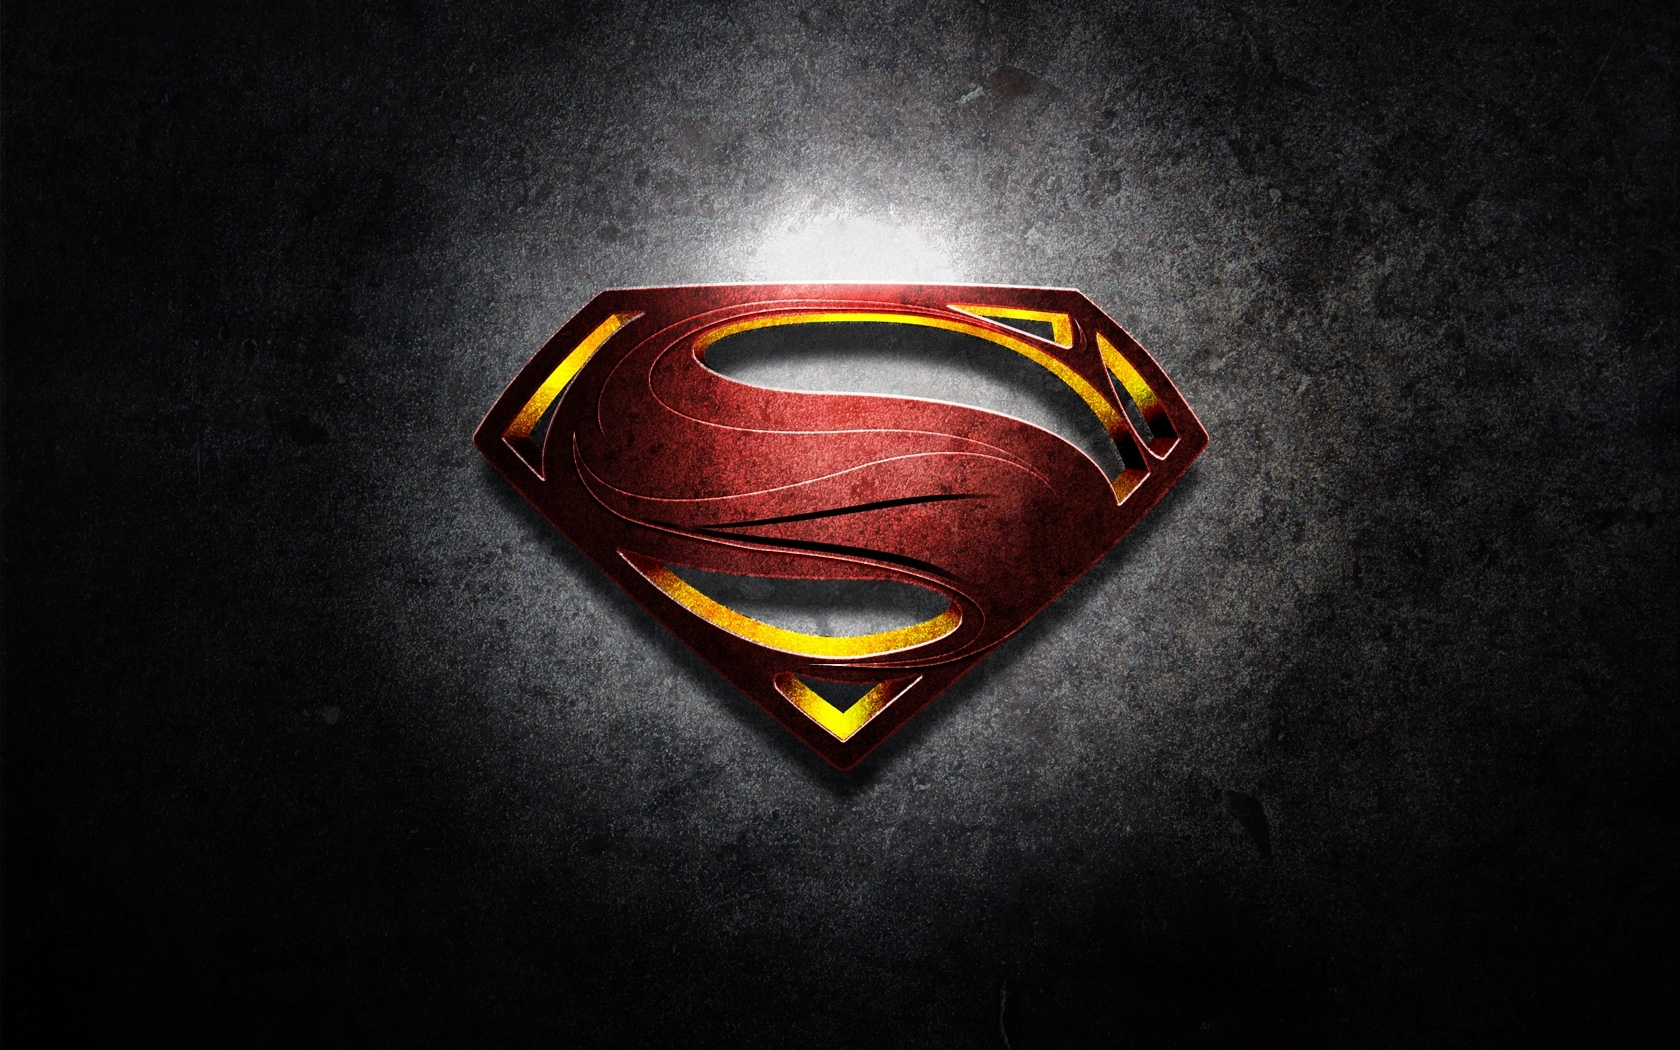 man of steel review - incoherentboy